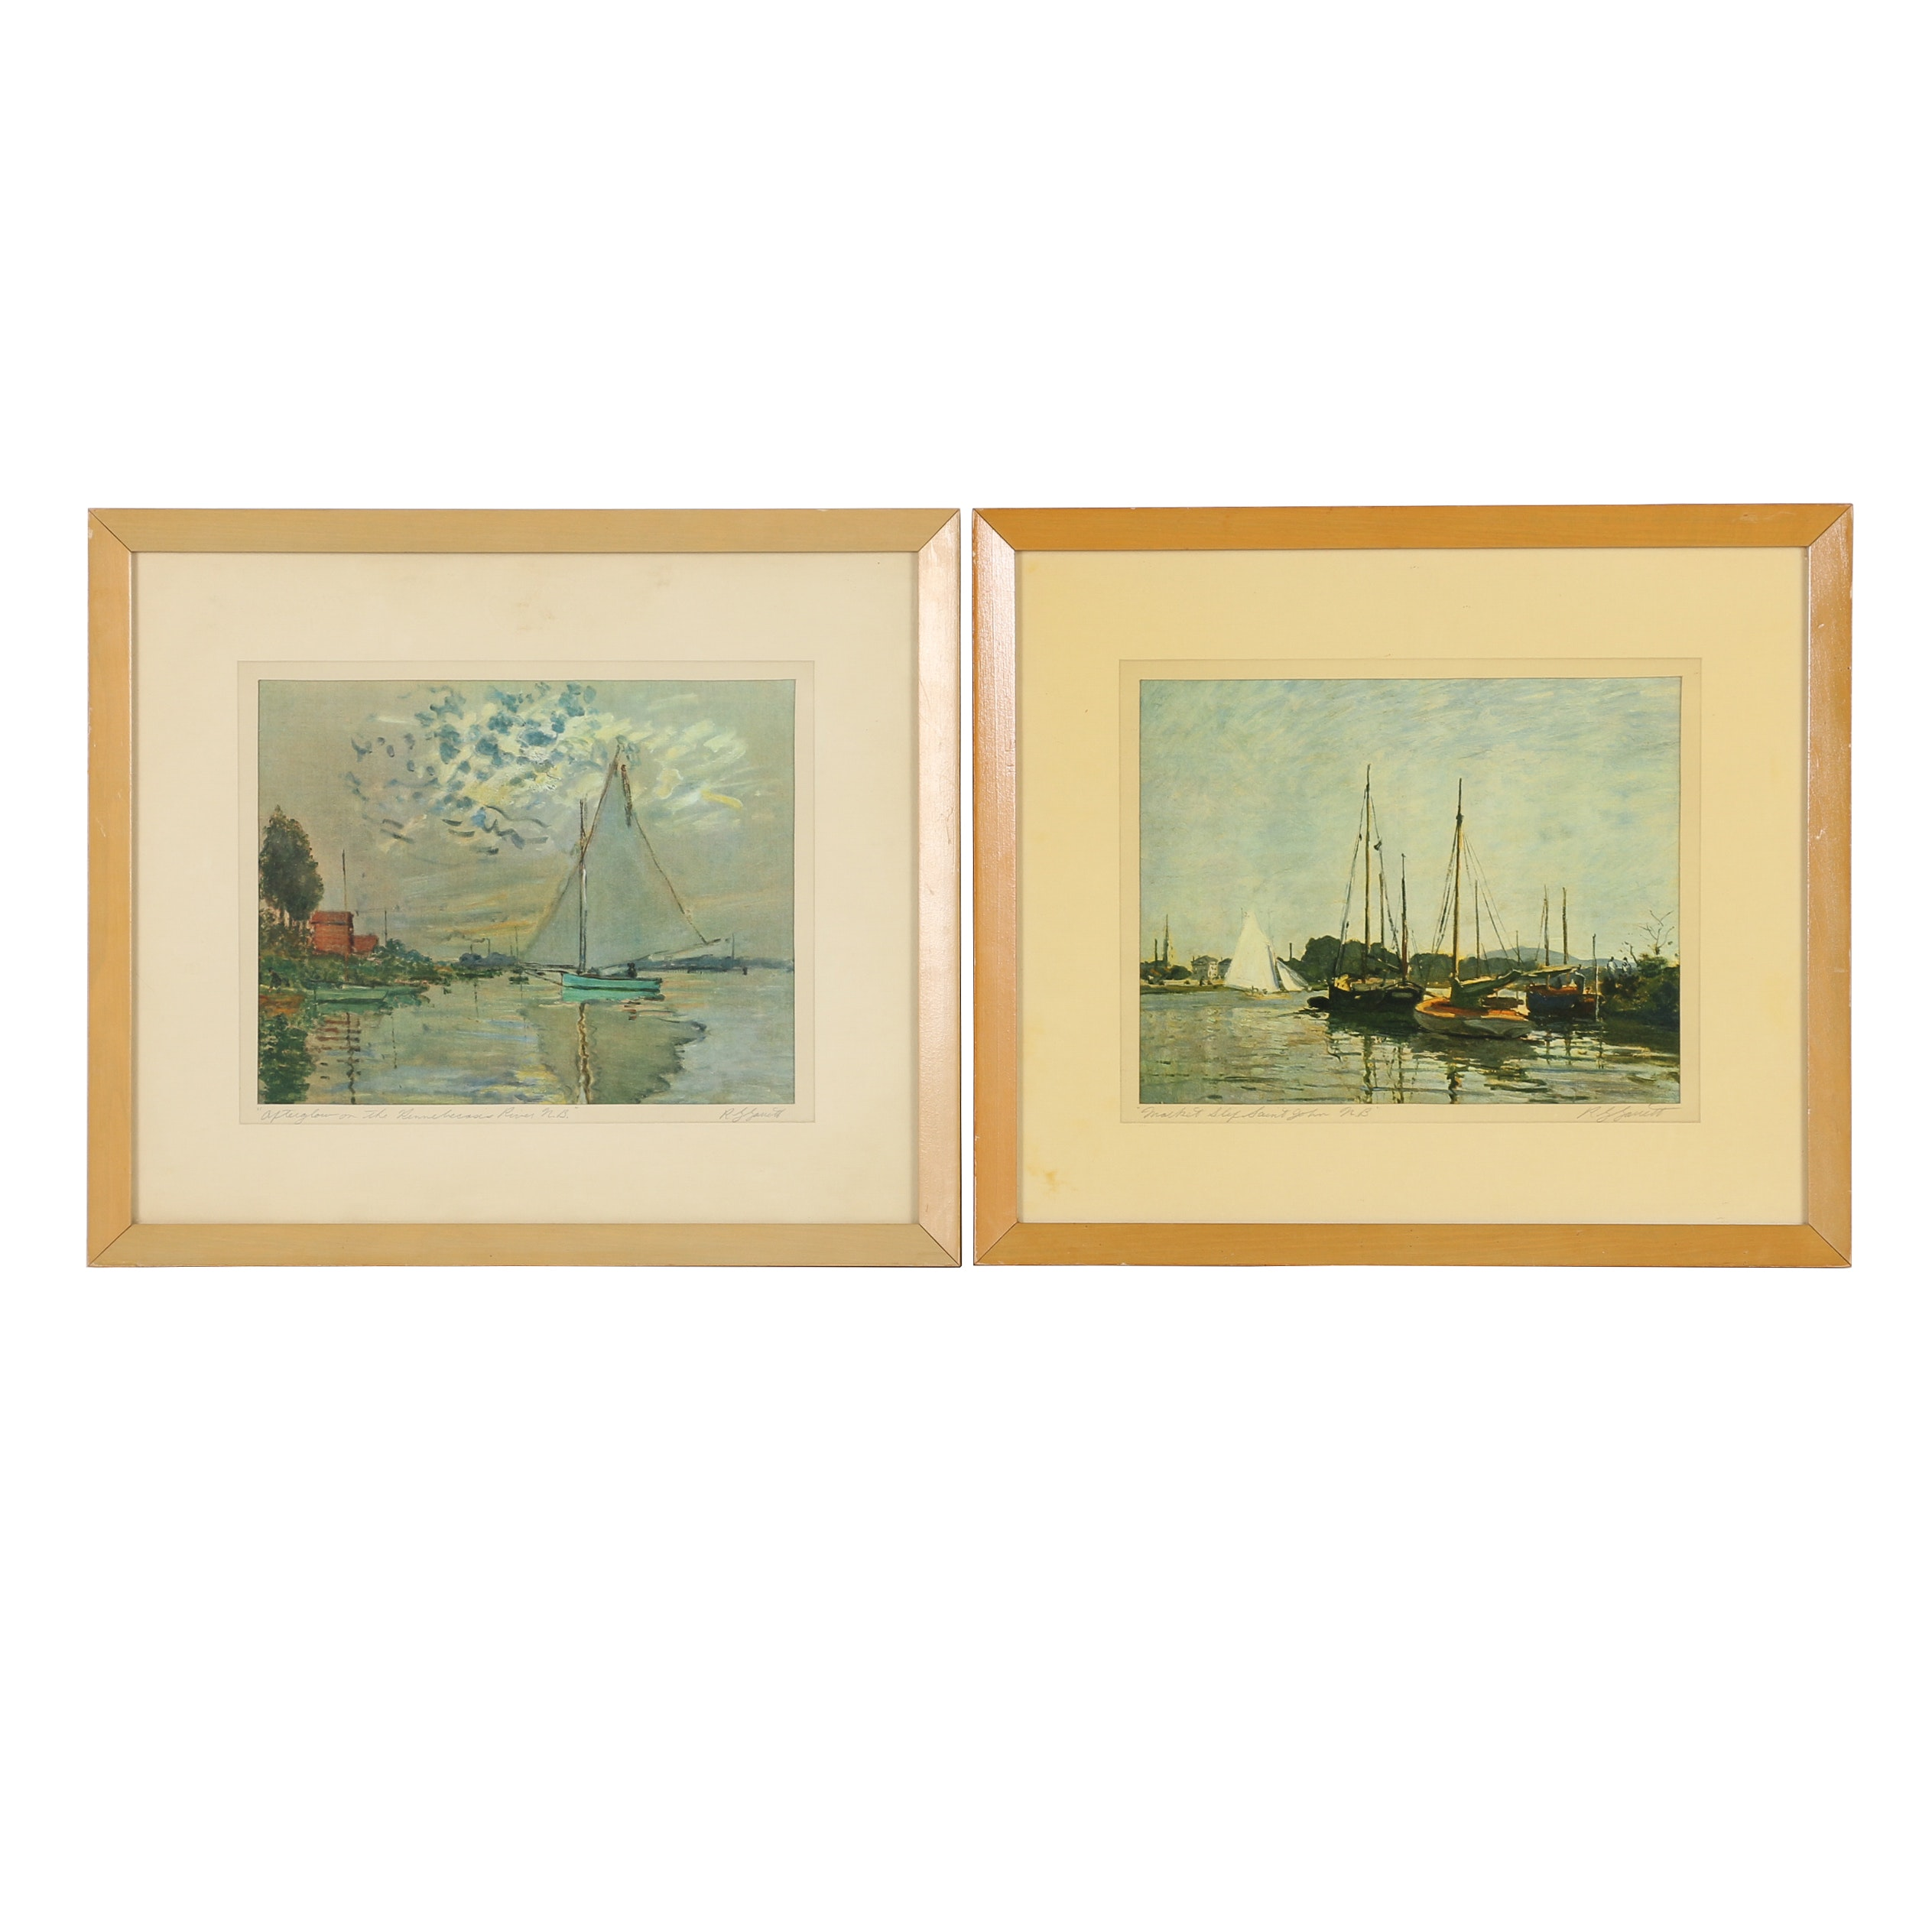 Offset Lithographic Reproduction Prints After Claude Monet